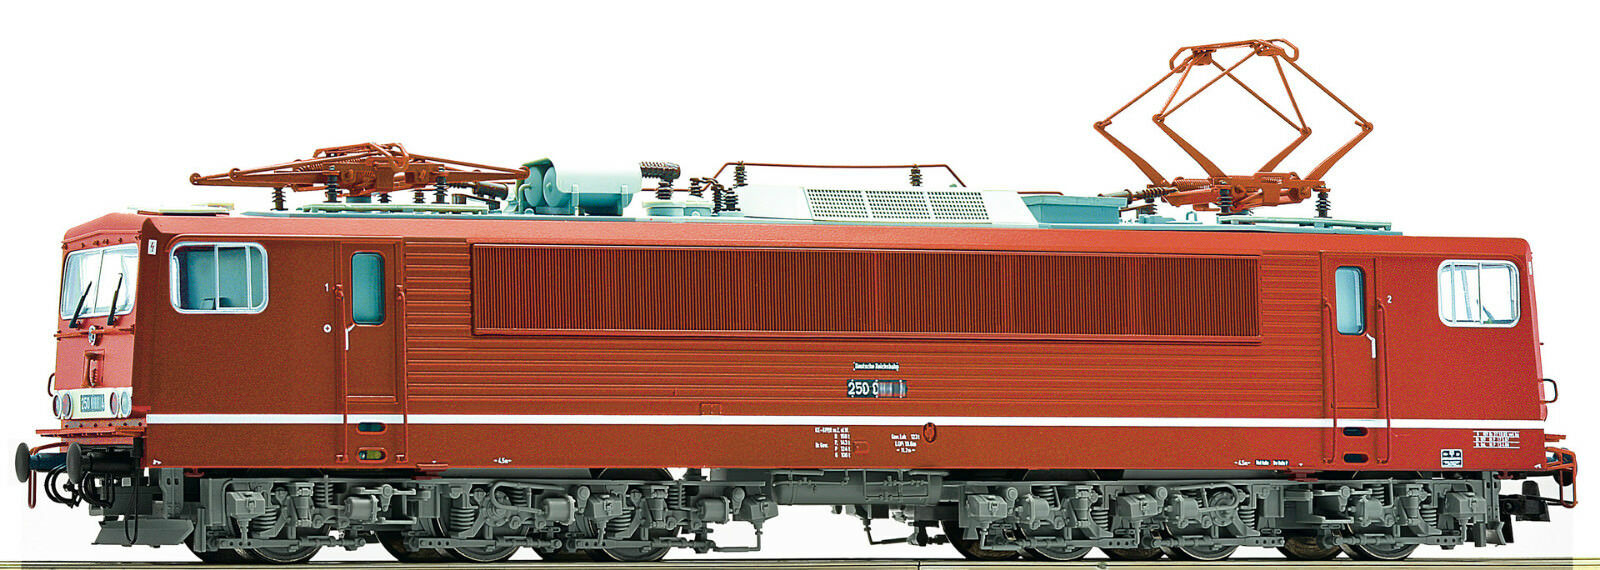 ROCO 73616 Locomotive électrique BR 250 244-1 Dr ep IV neuf&emballage d'origine